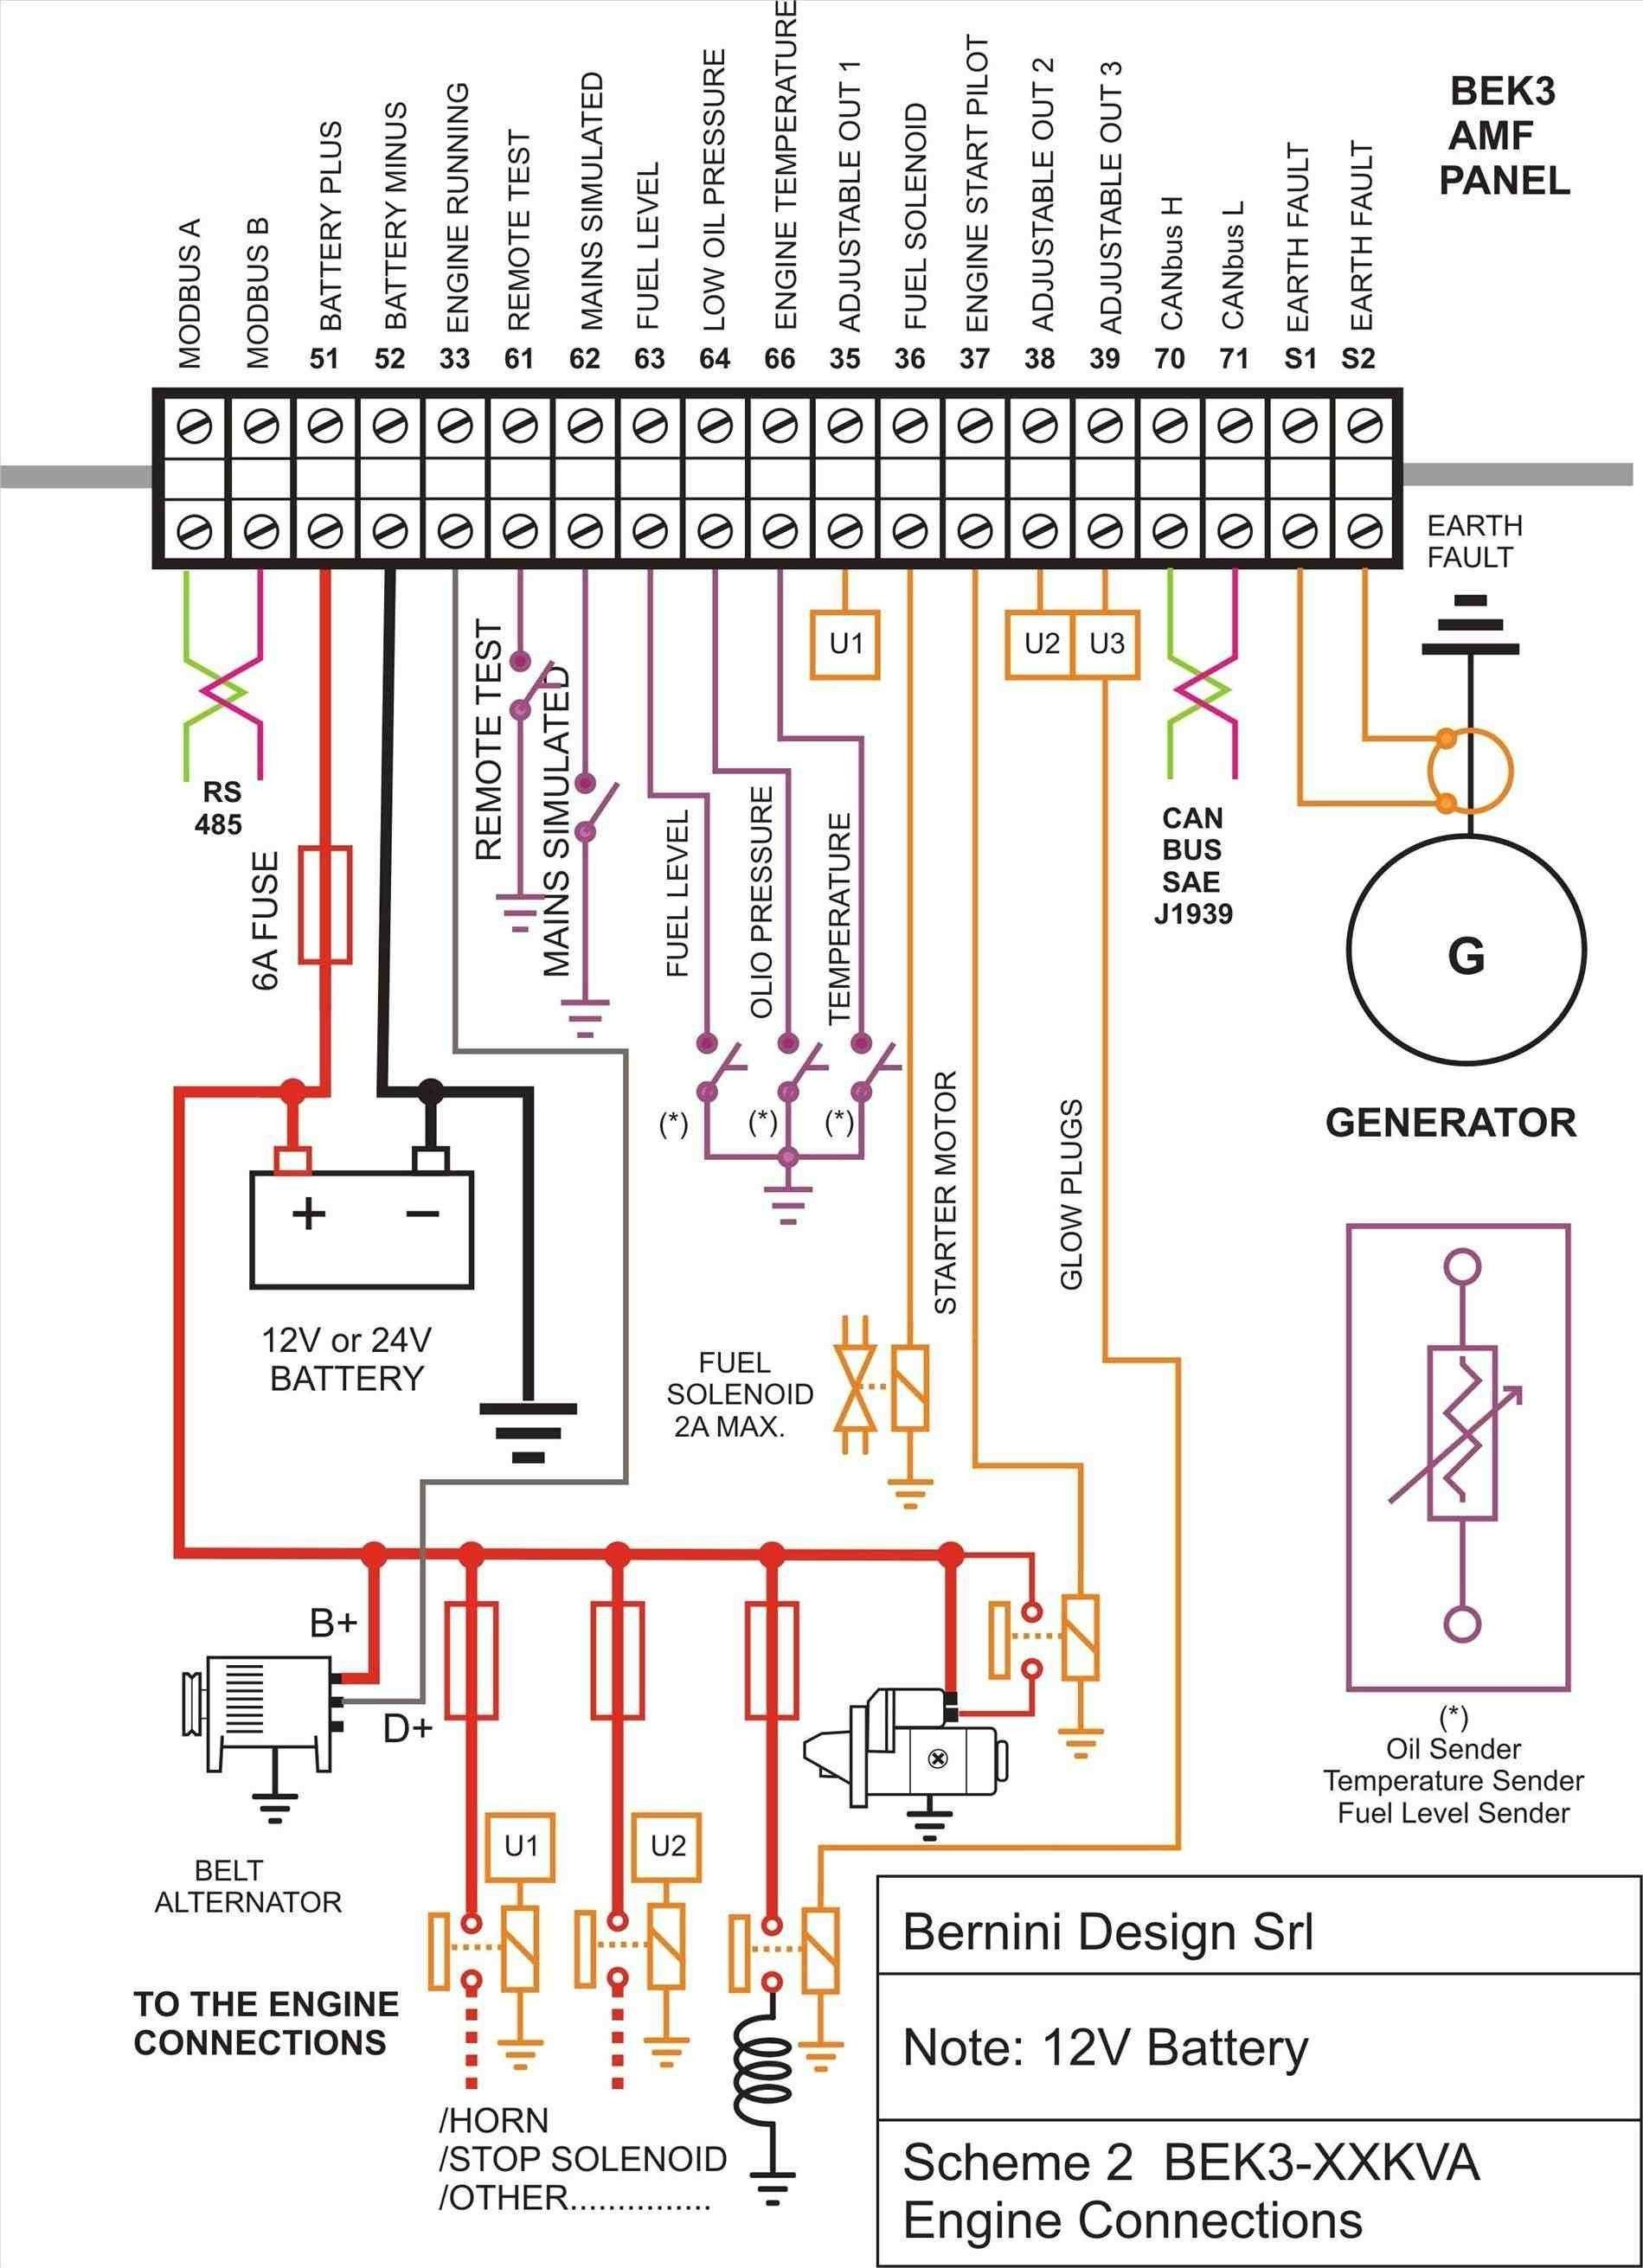 house wiring circuit diagram pdf fresh typical wiring diagram for rh pinterest com house wiring diagram pdf download house electrical wiring diagram pdf